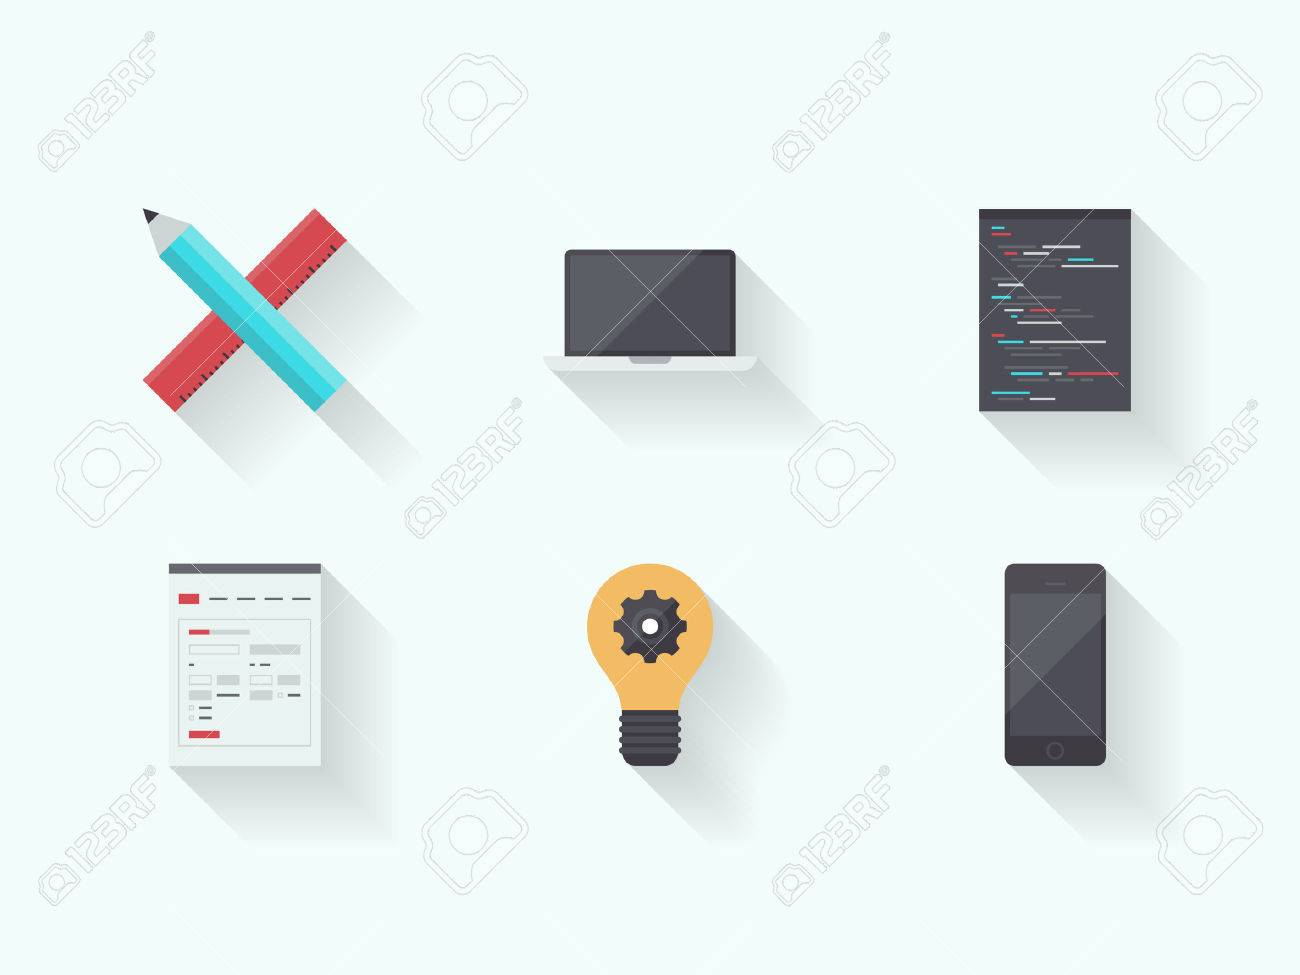 Flat design vector illustration icons set with long shadow of web page programming and user interface product development process design with modern technology devices  Isolated on white background Stock Vector - 24407246